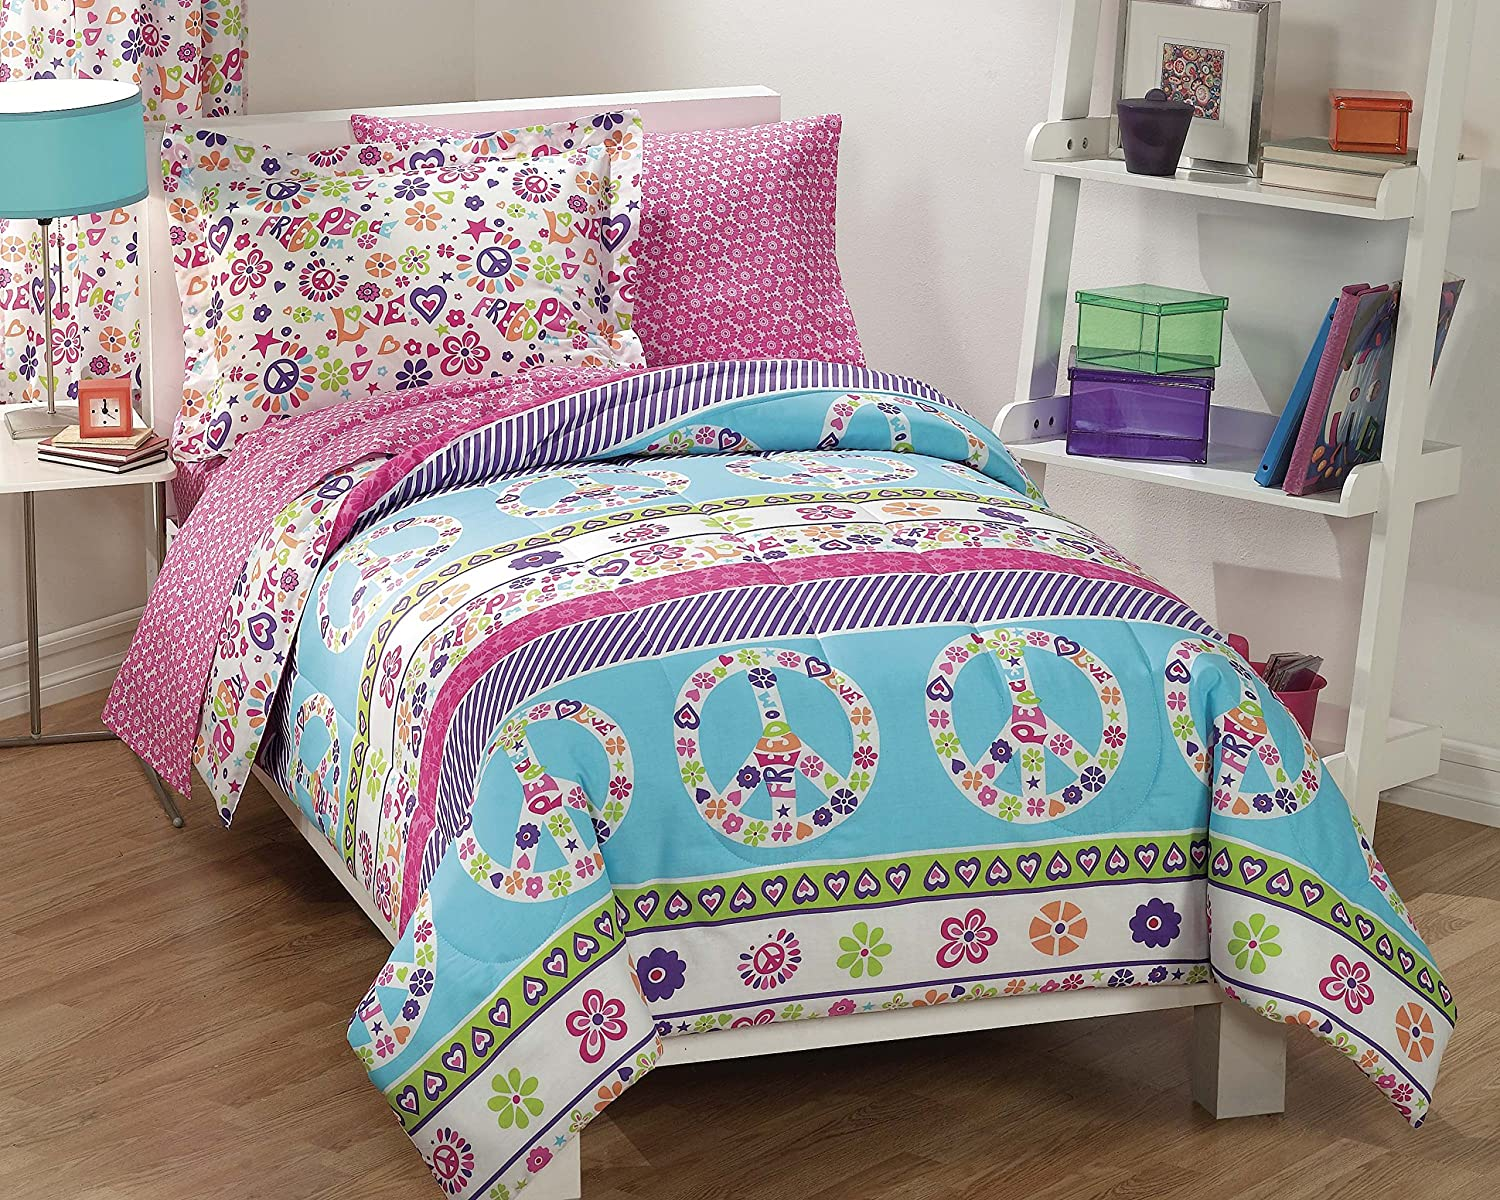 Dream Factory Peace And Love Peace Signs Girls Comforter Set, Multi-Colored, Twin